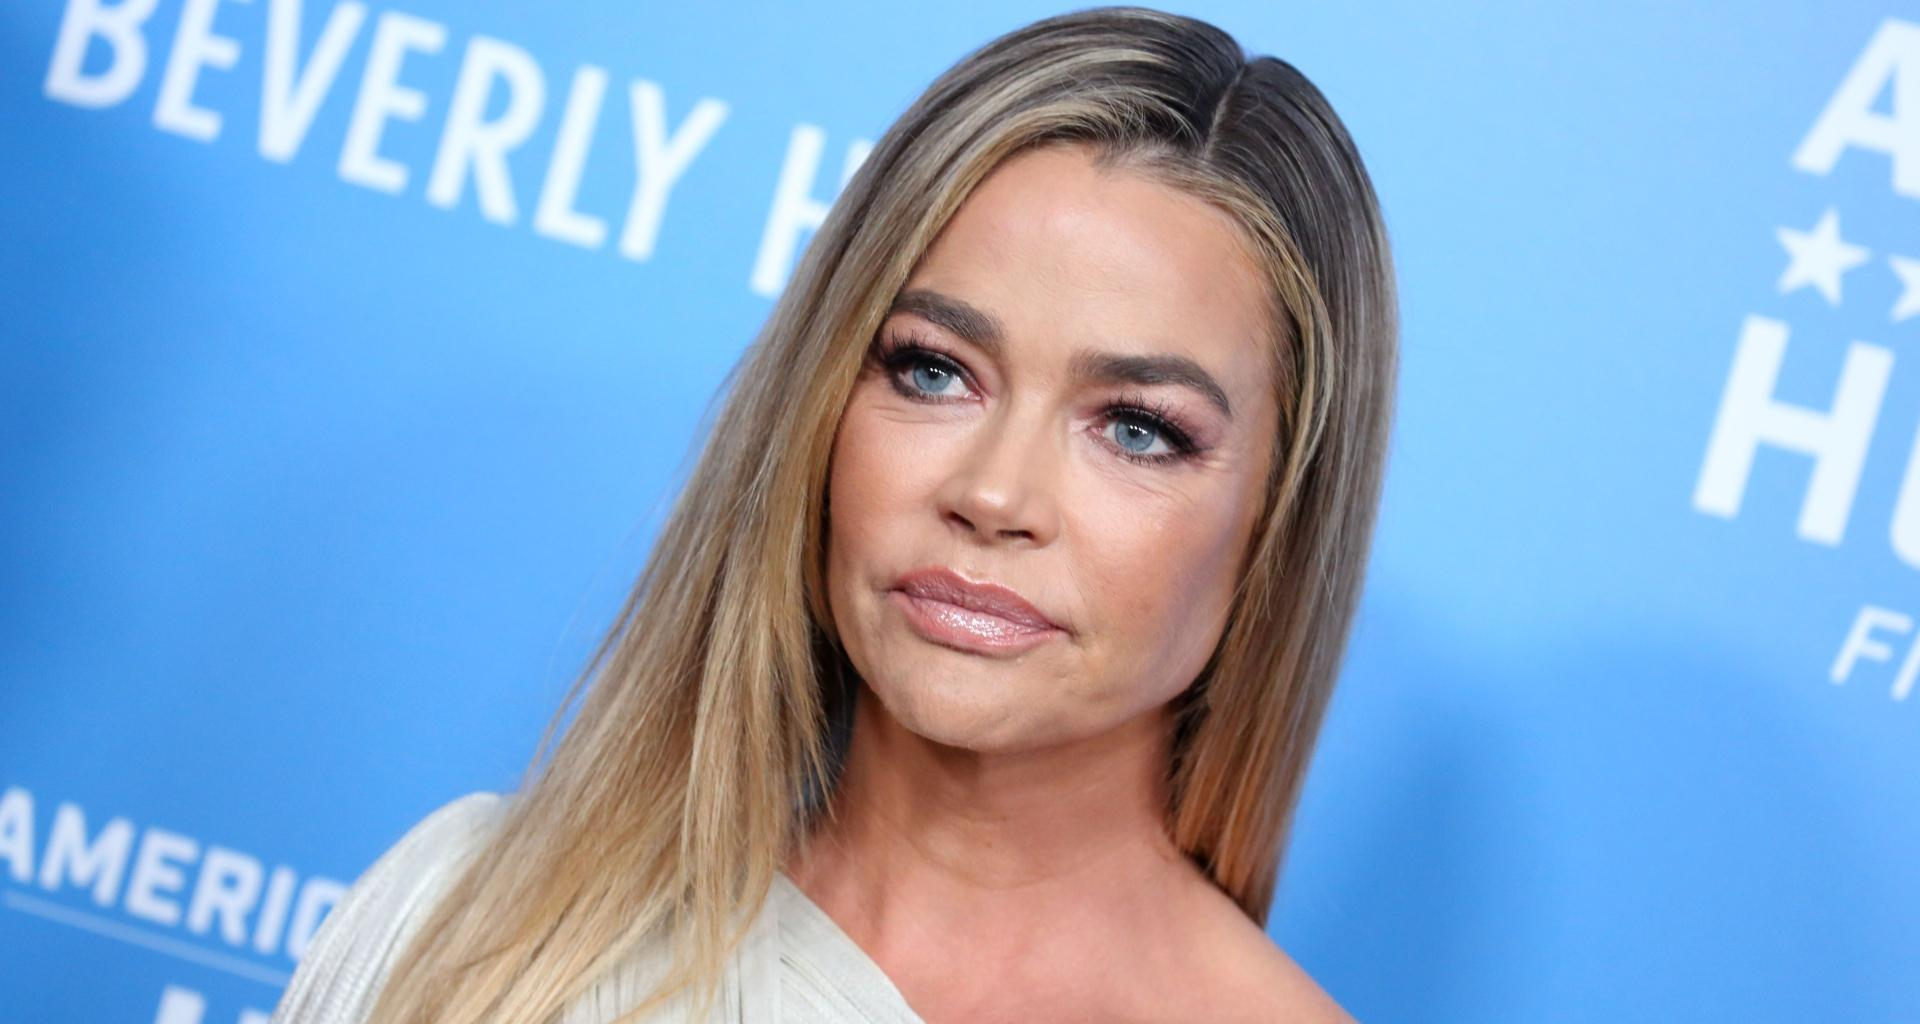 Denise Richards Clapsback At Twitter User Who Accuses Her Of Not Reaching Out To Lisa Vanderpump